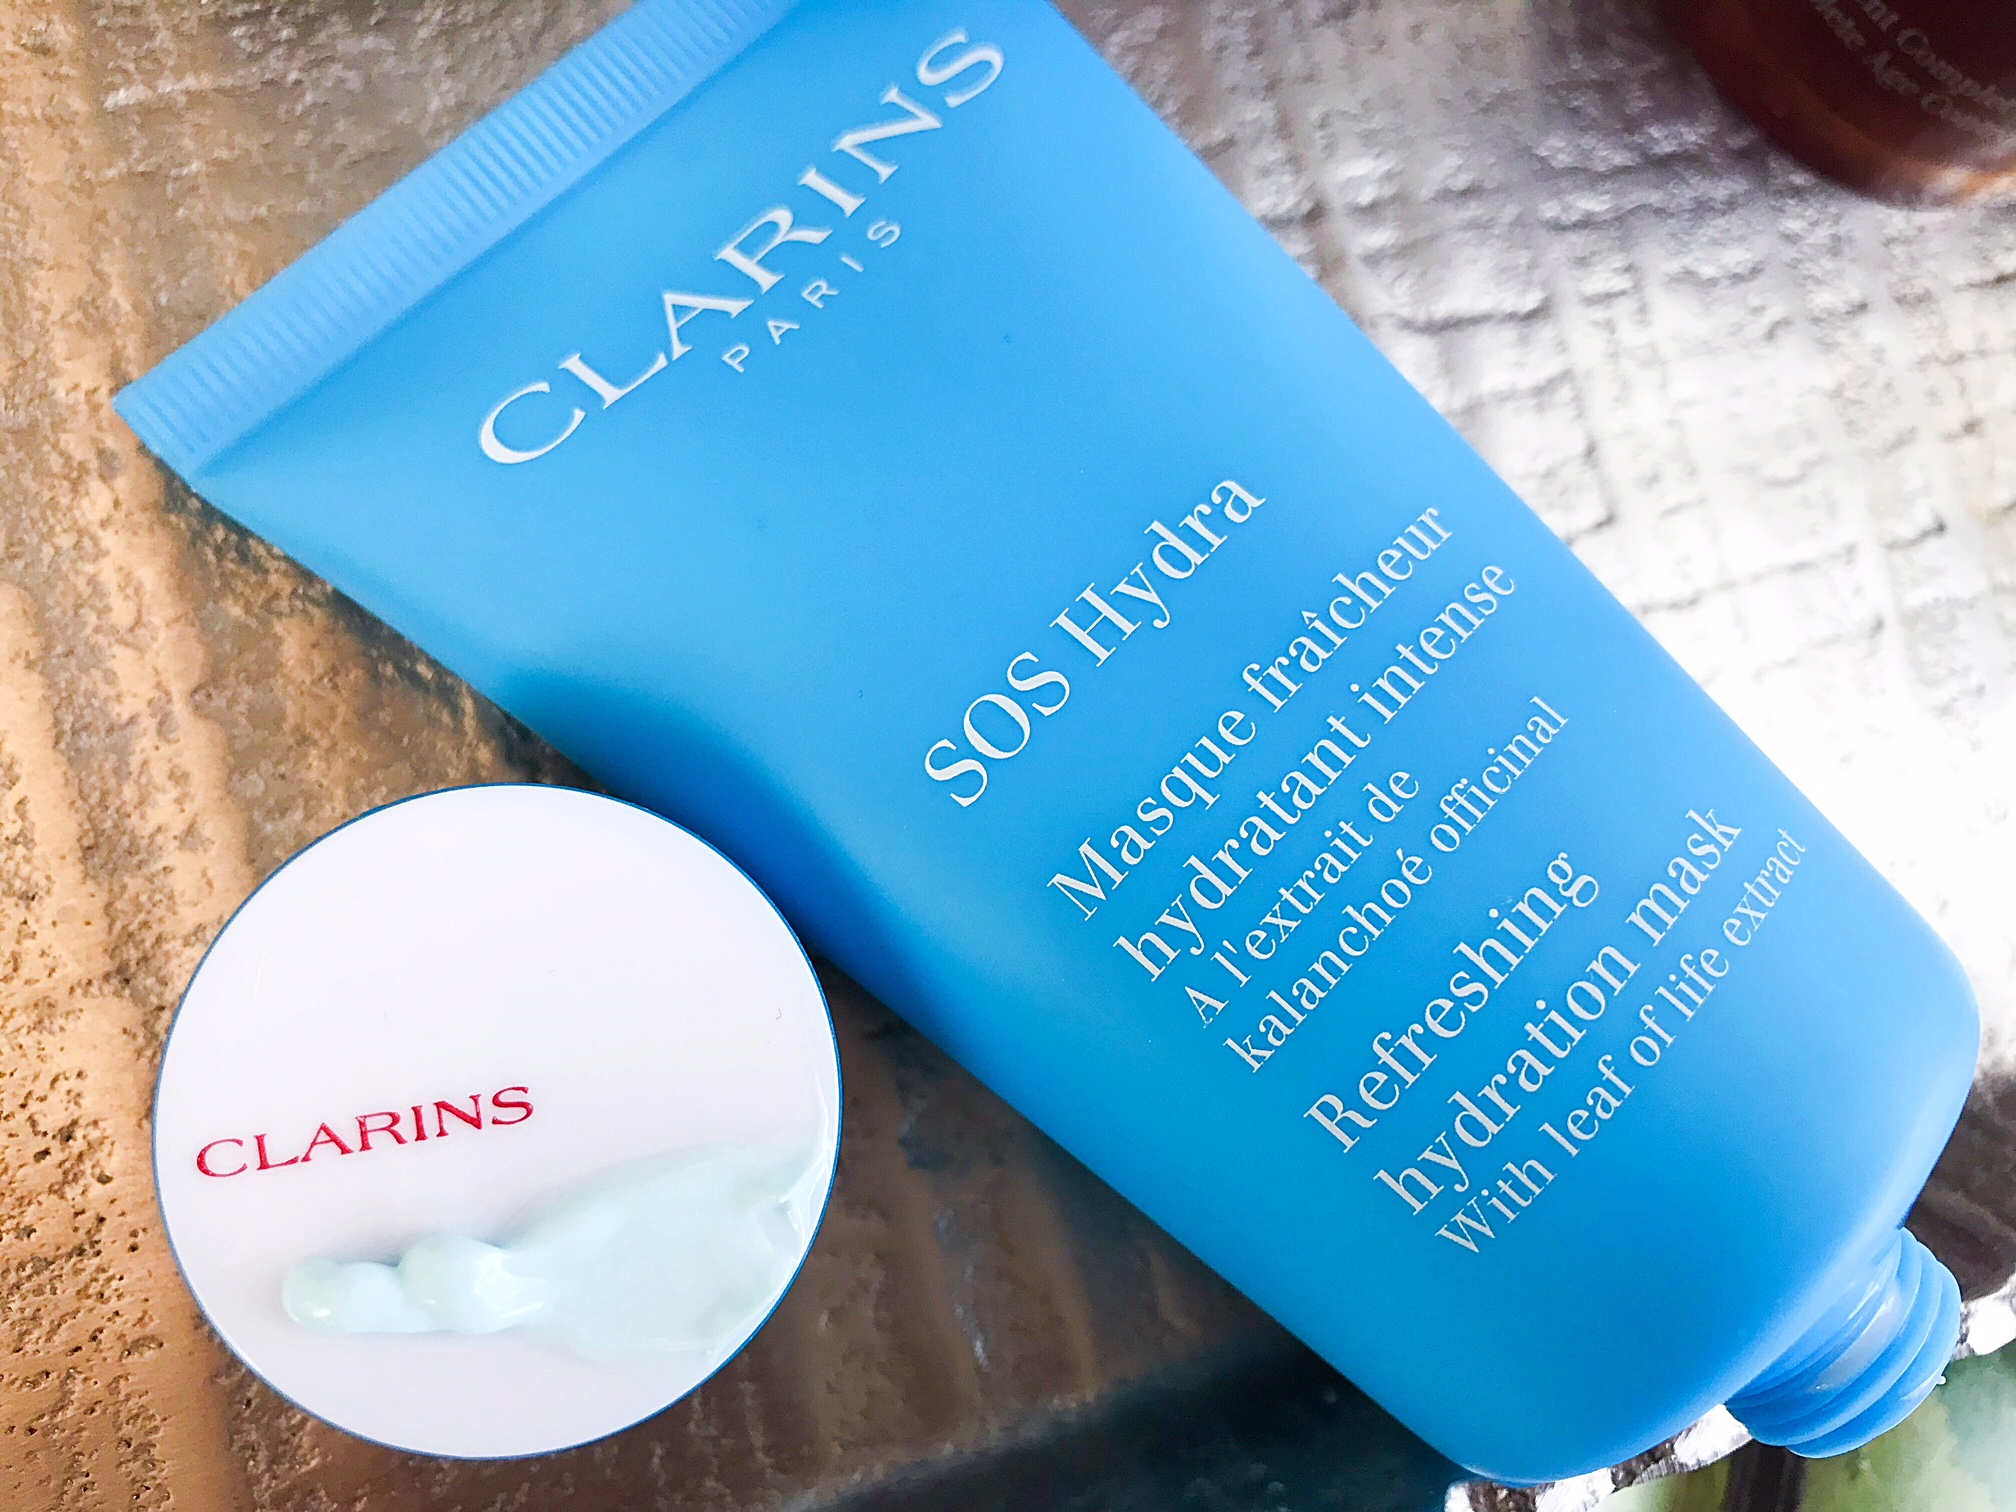 The Clarins Sos Hydra Mask Is The Kind Of Mask